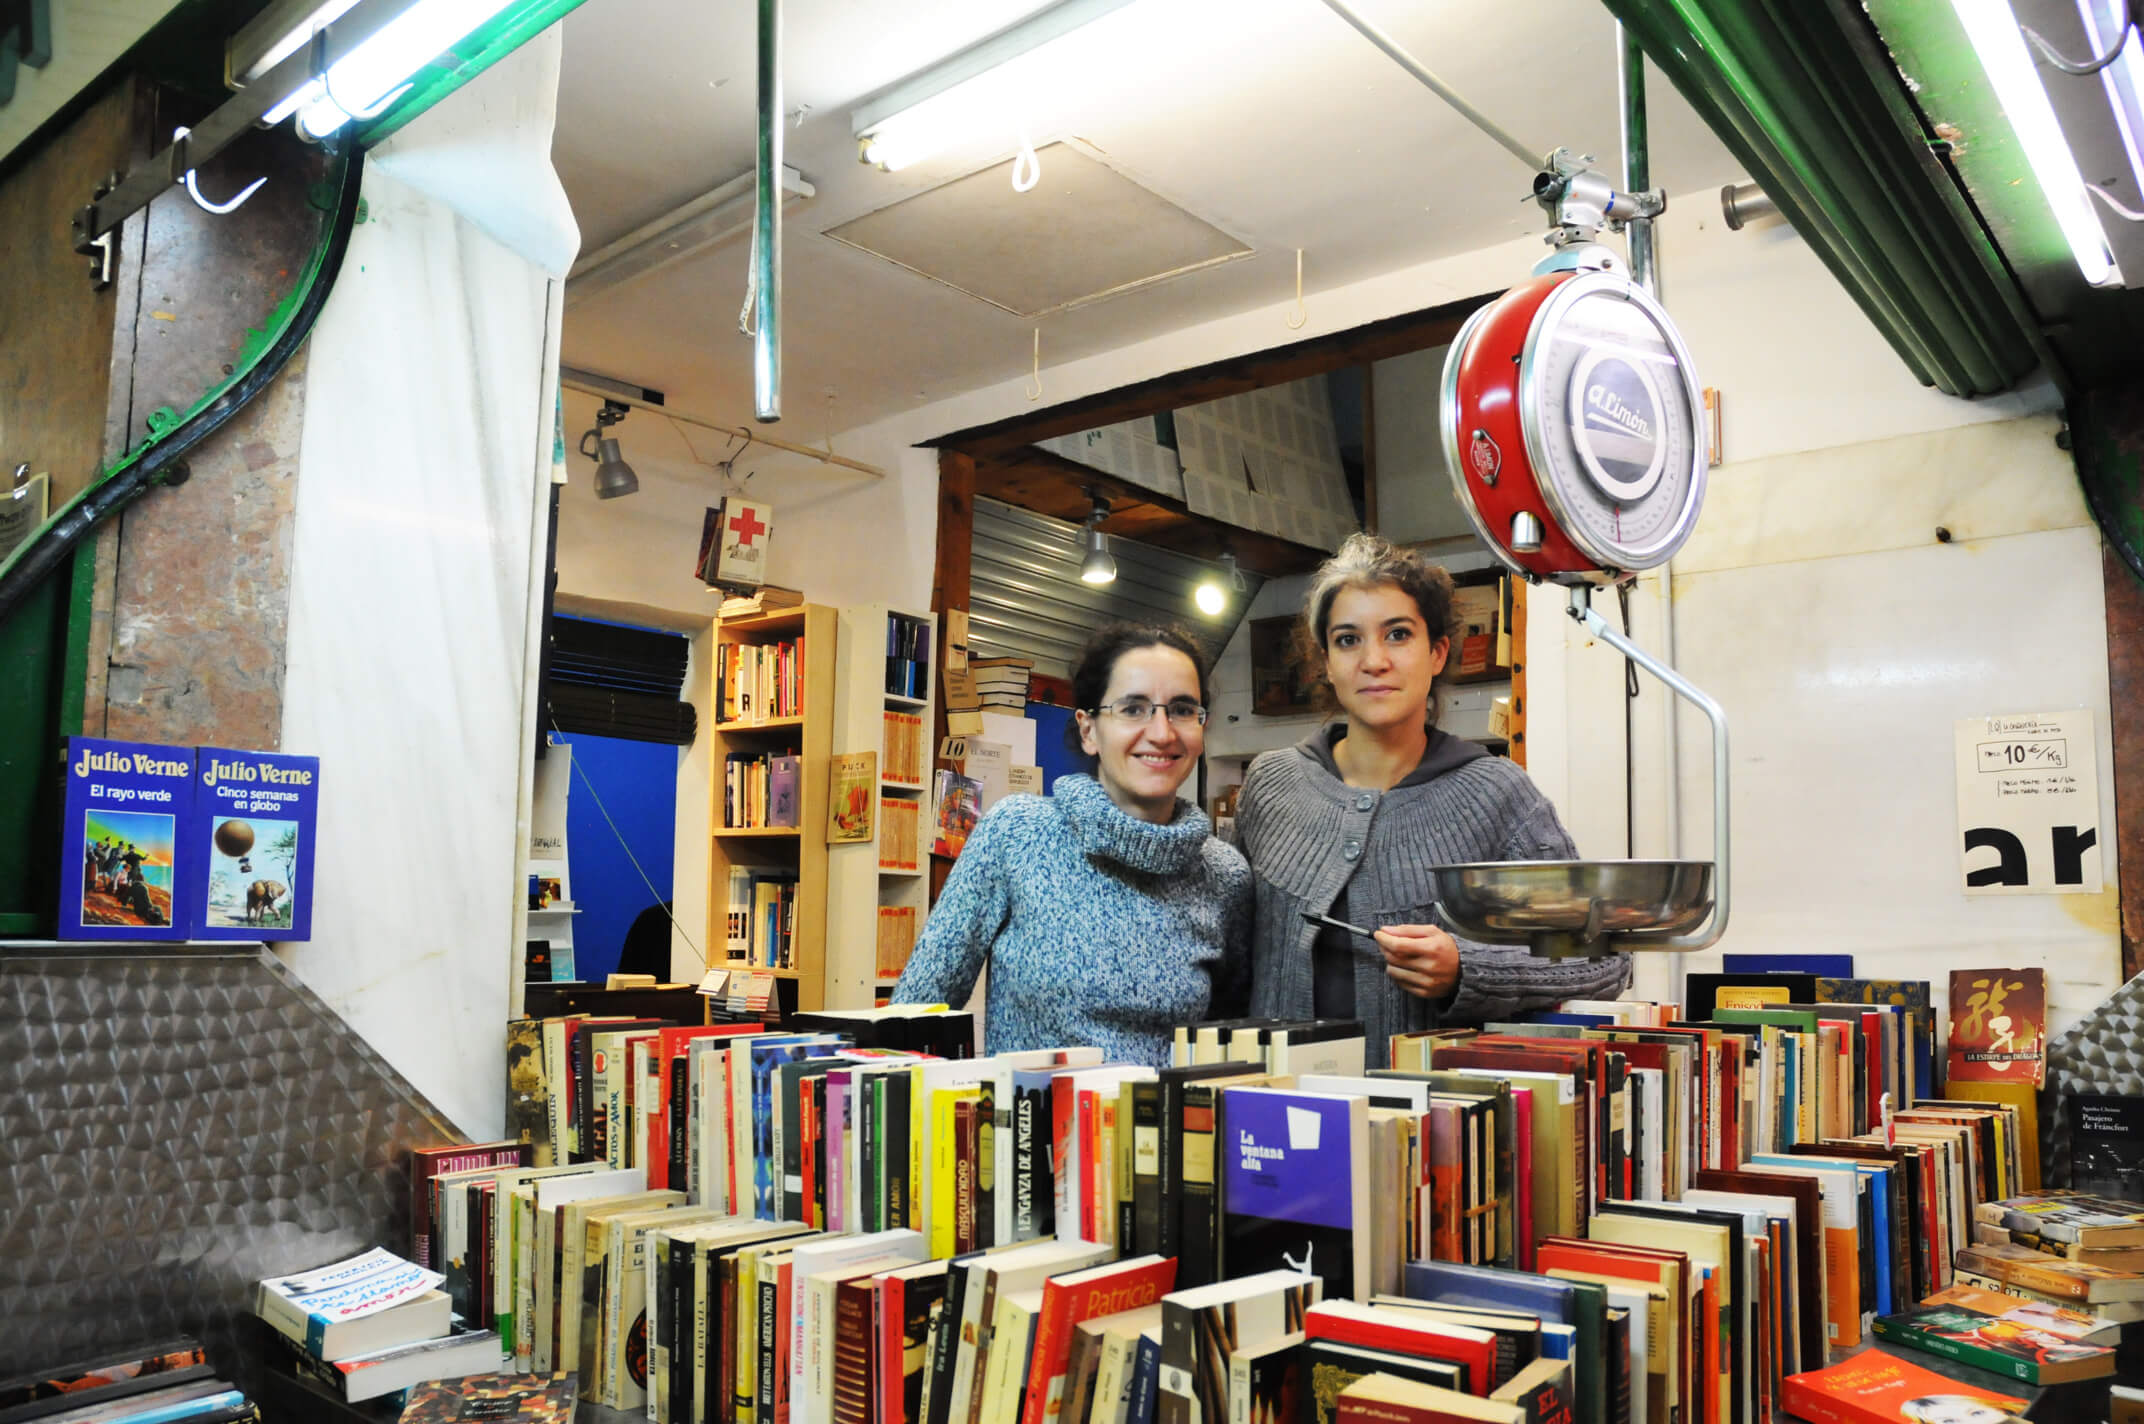 La Casqueria sells second hand books by the kilo